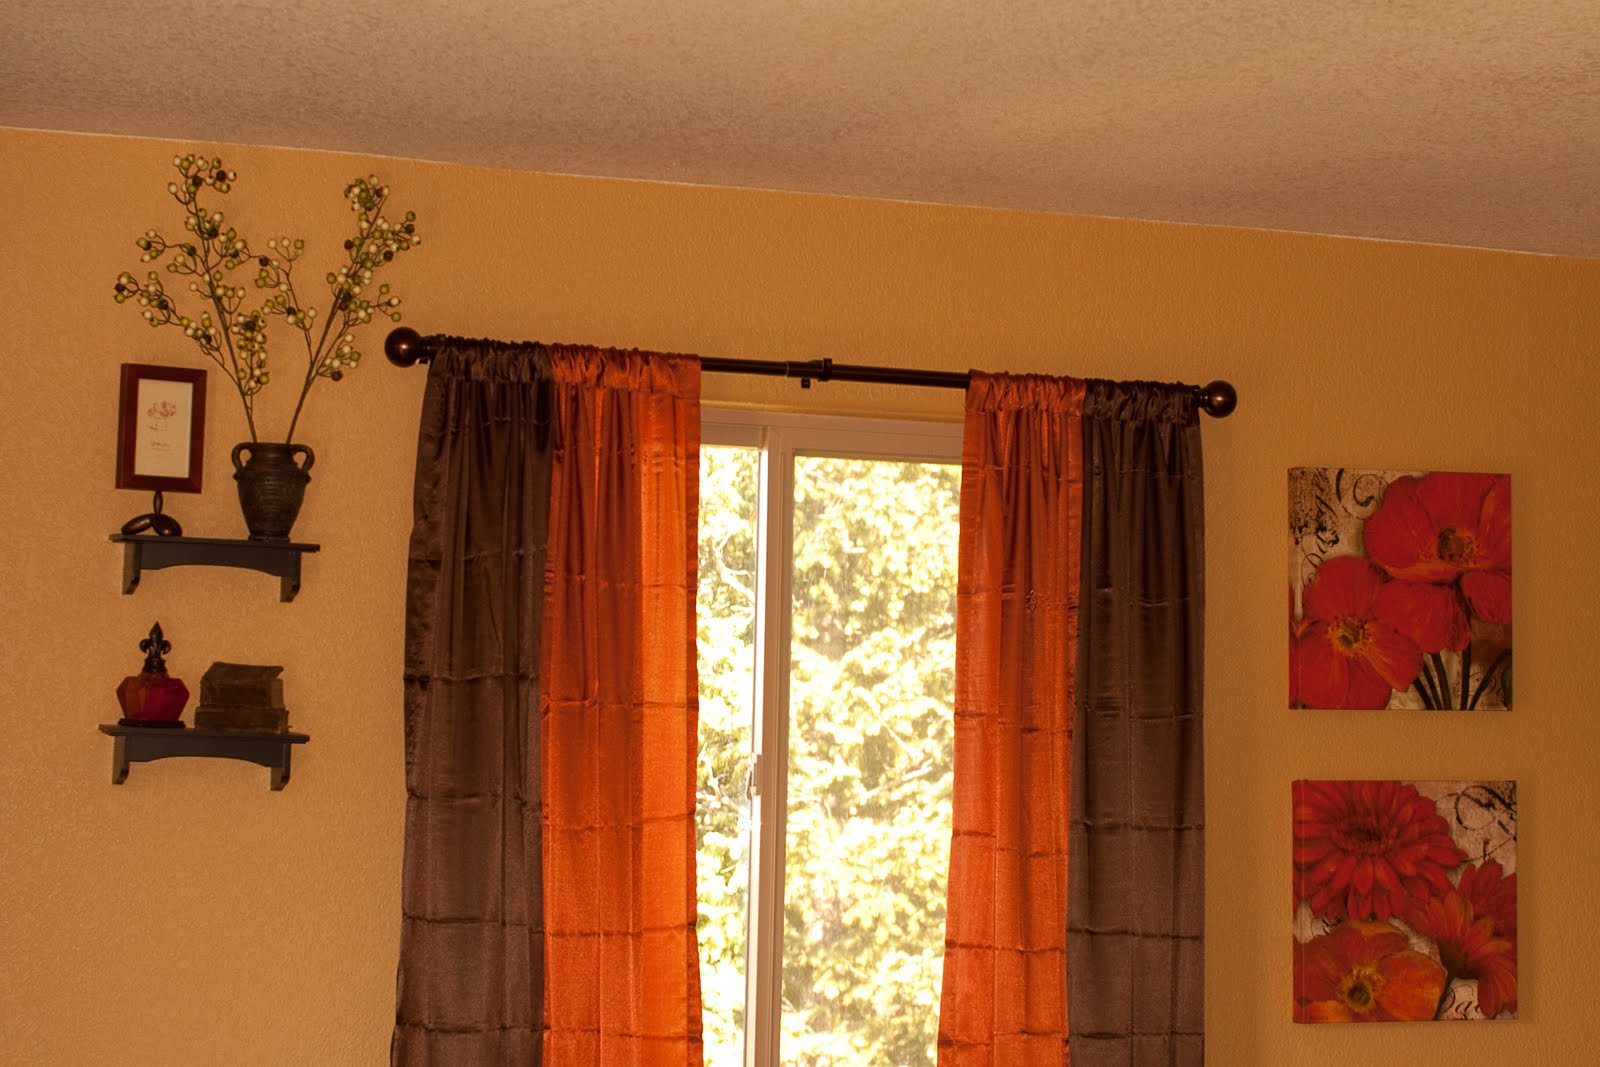 Organized chaos master bedroom facelift - Orange and brown curtains ...